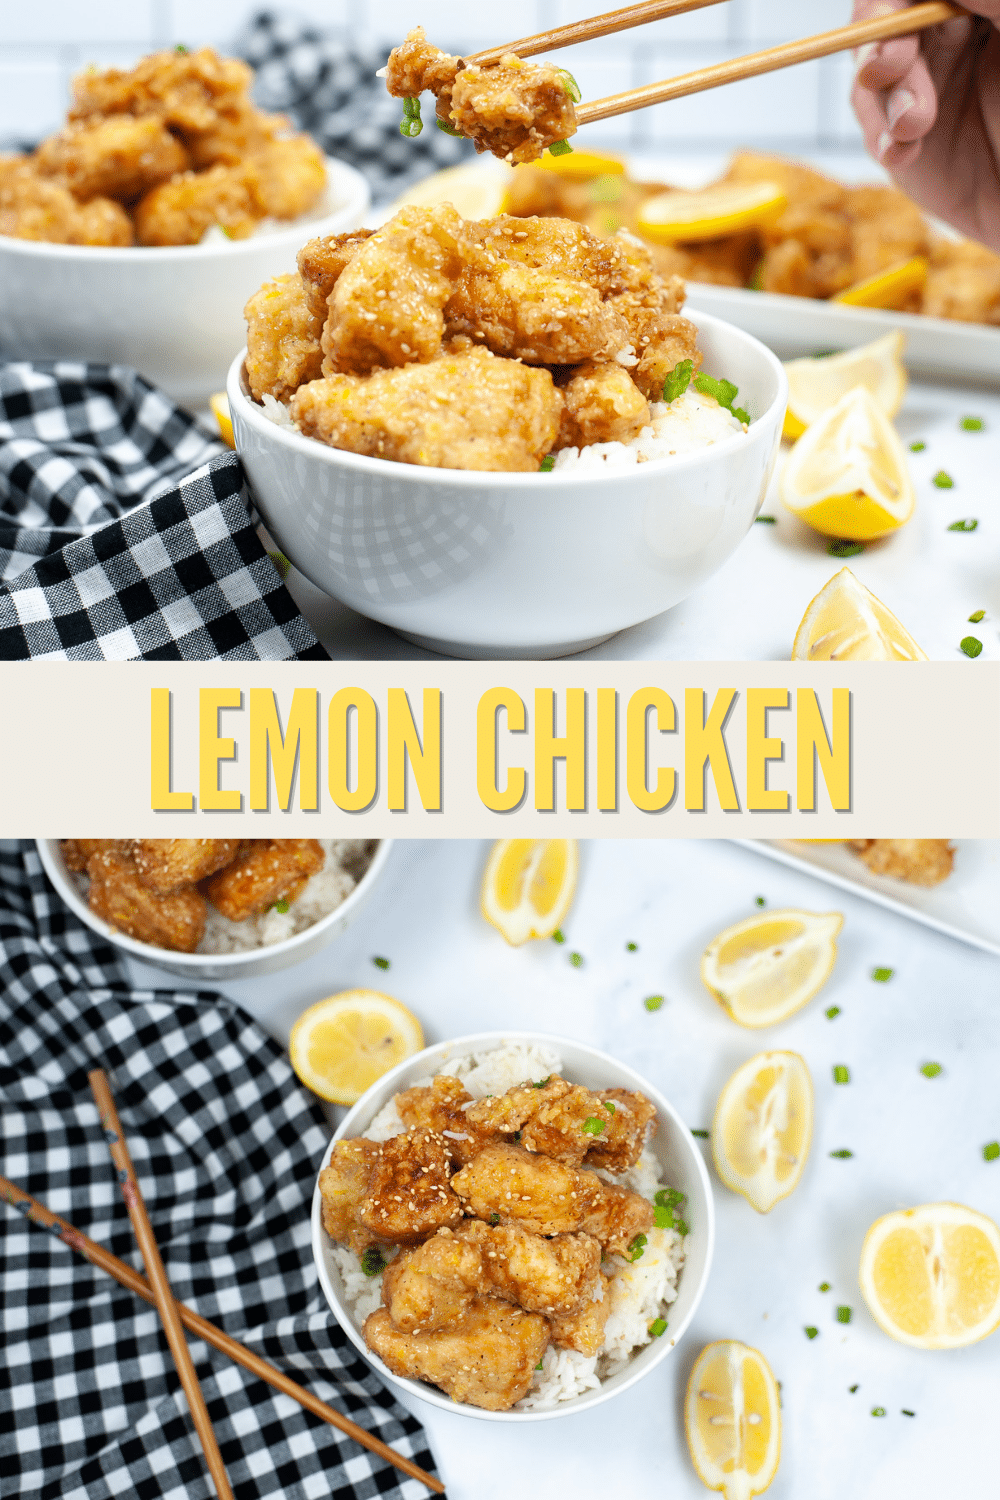 Lemon Chicken is so easy to make. This simple dish is coated in sweet and tangy citrus sauce, and can be on the table in 45 minutes. #lemonchicken #chinesefood #chicken #recipe via @wondermomwannab